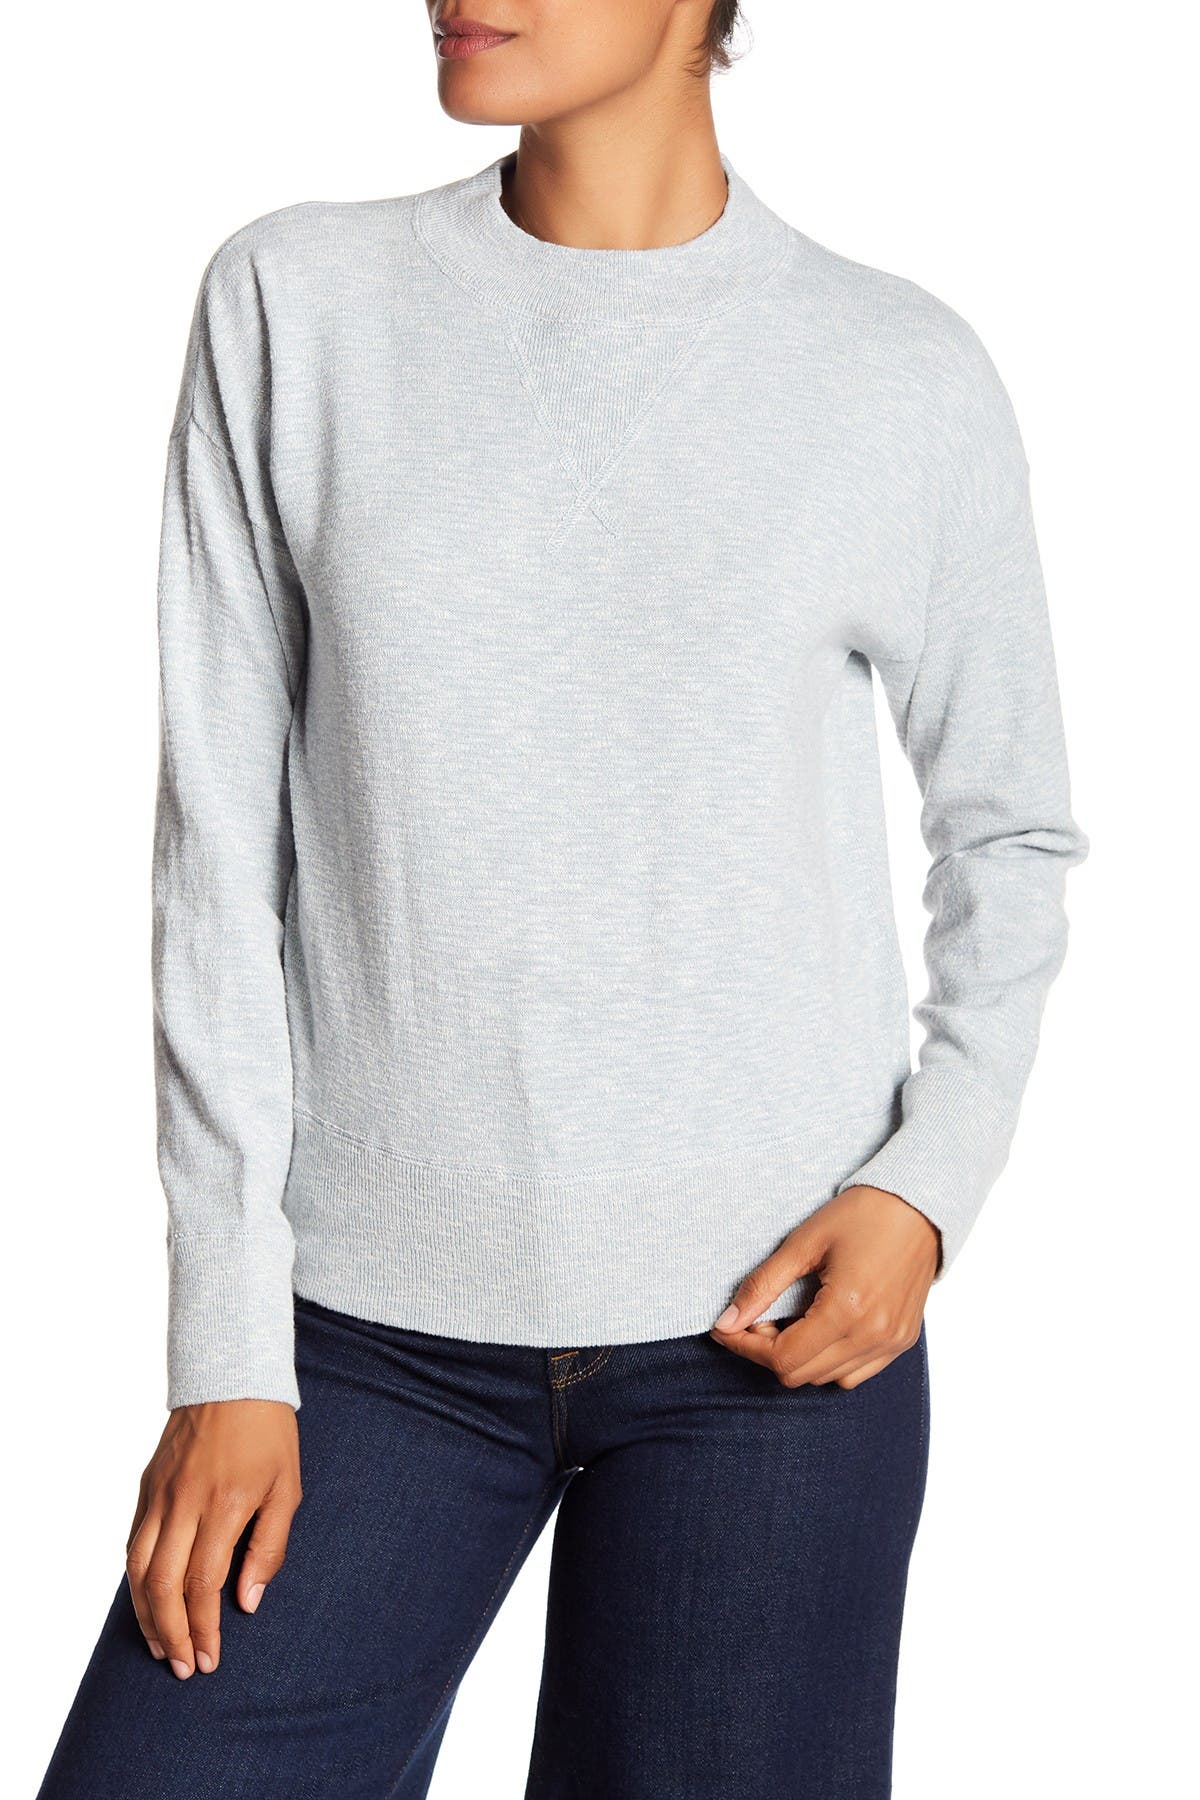 Image of Madewell Relaxed Mock Neck Sweatshirt